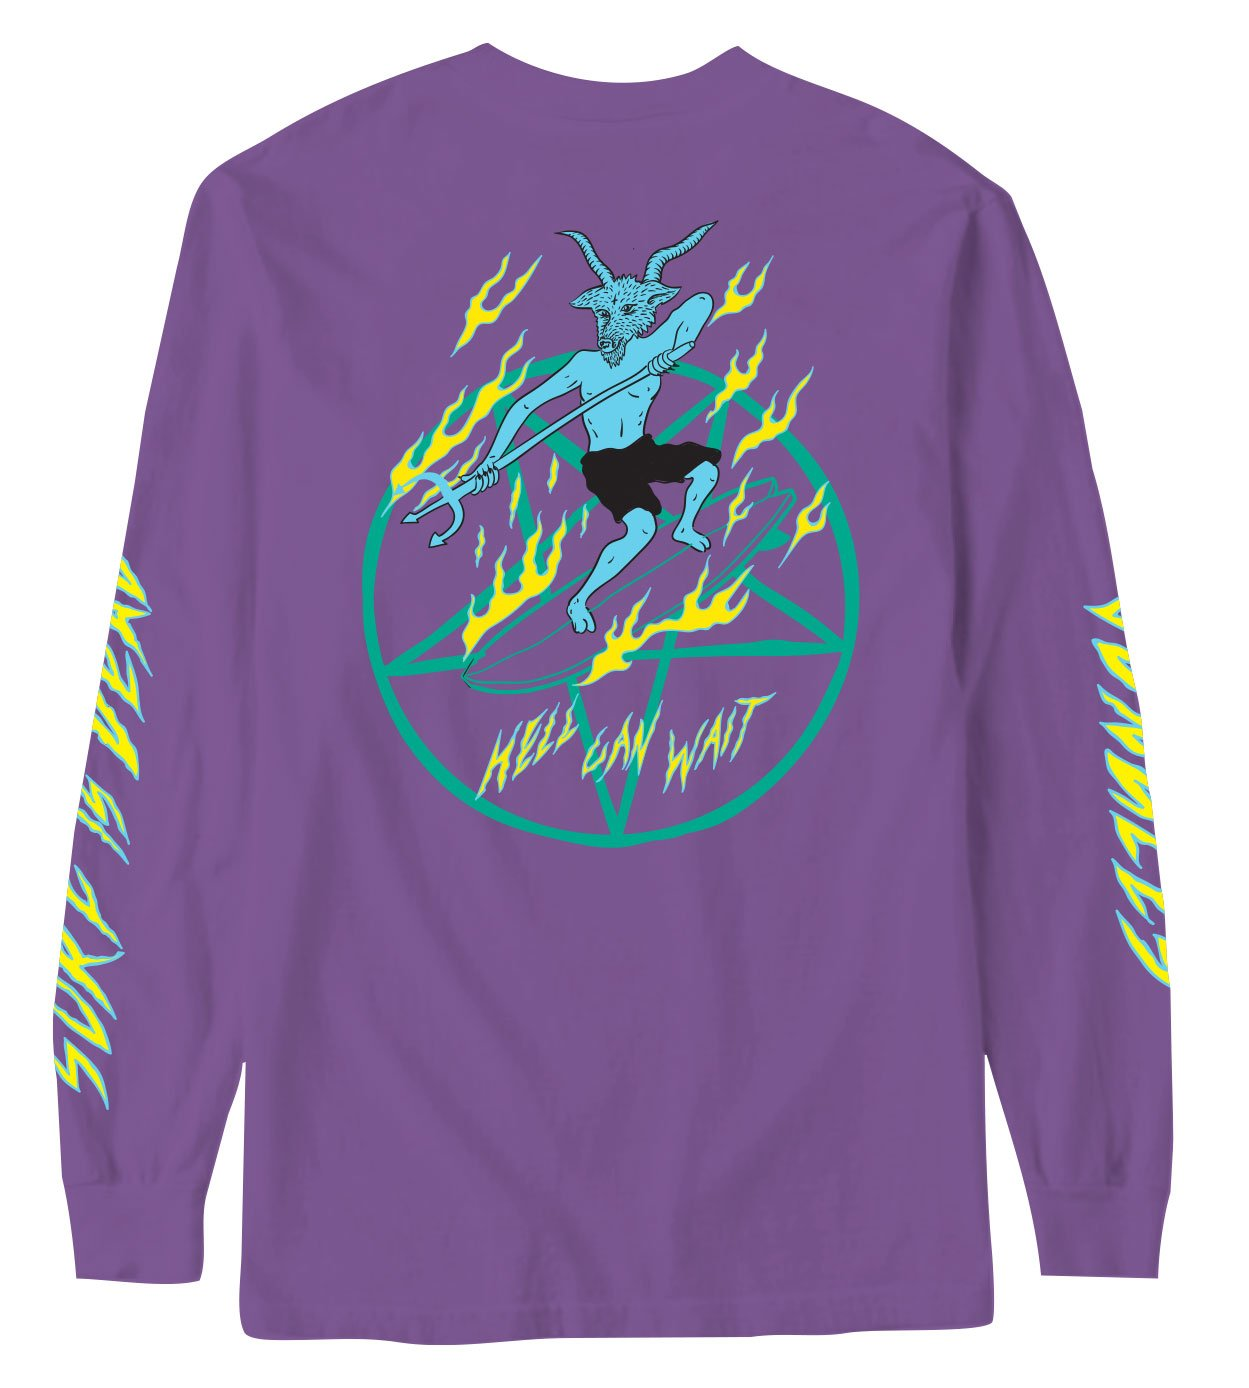 HELL CAN WAIT LONG SLEEVE TEE - PURPLE